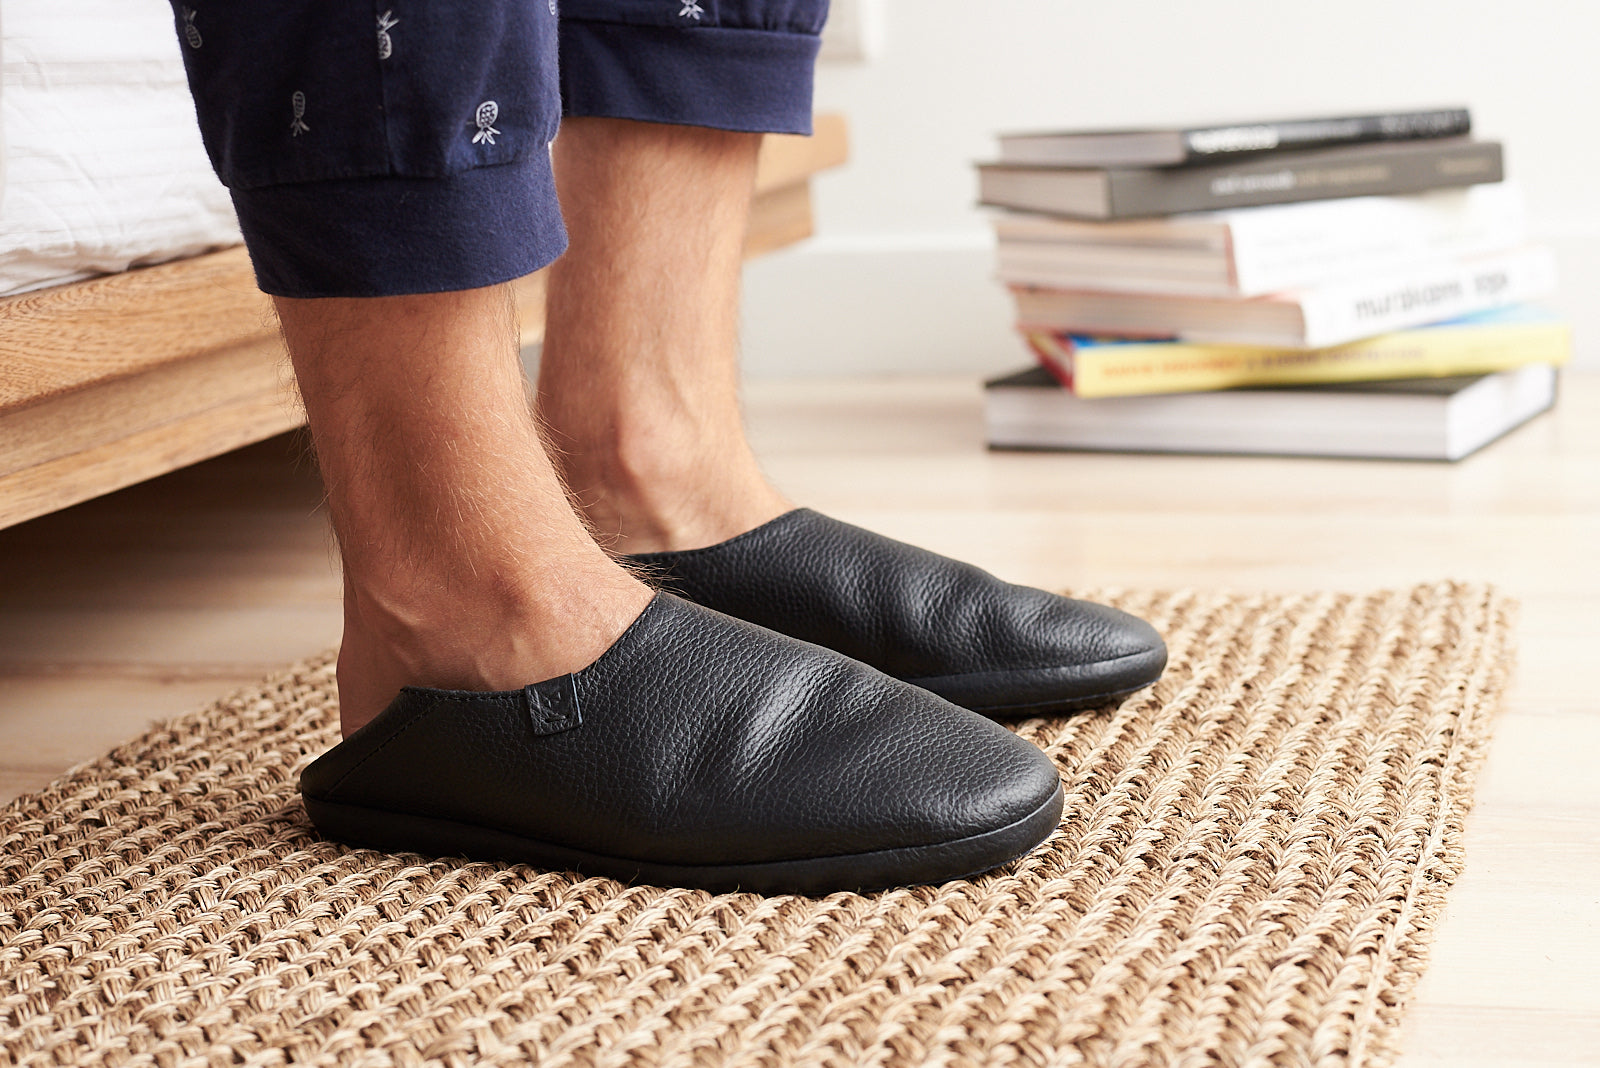 Black home shoes. Slippers and slip on